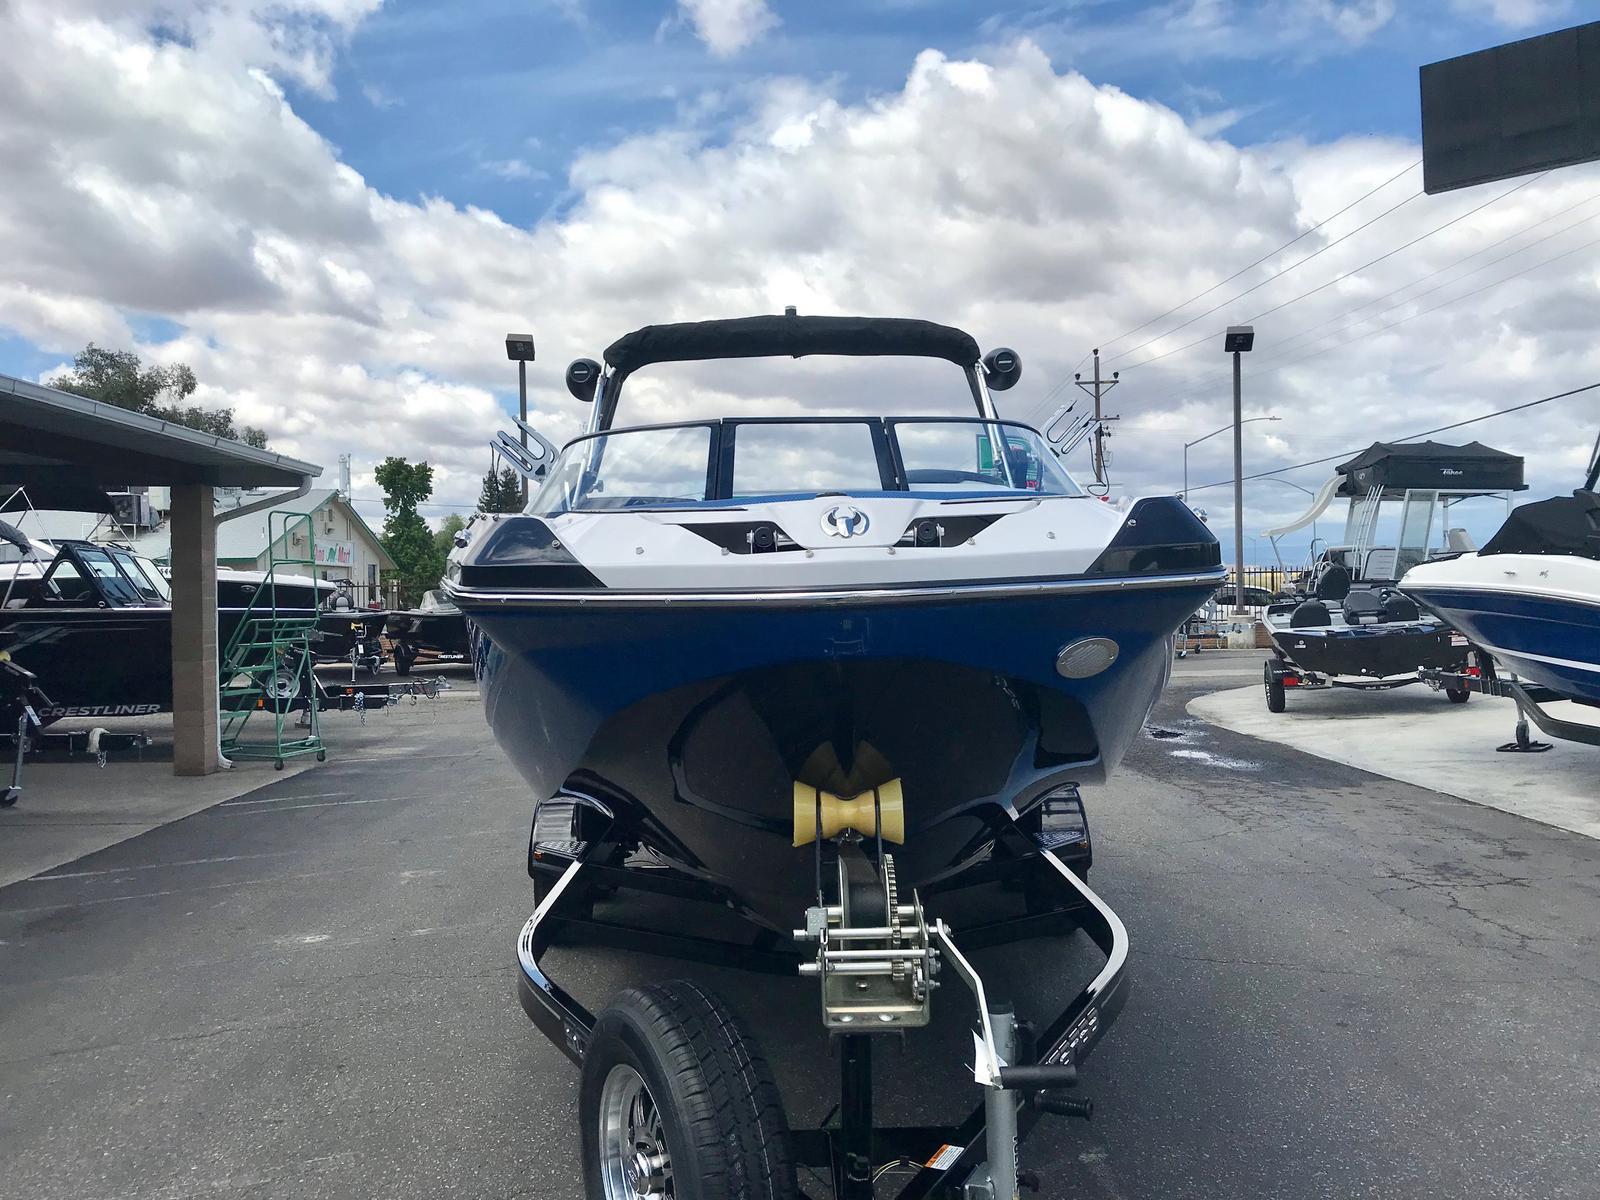 2019 Scarab 255 ID w/ Twin 250 Supercharged Rotax Engines!